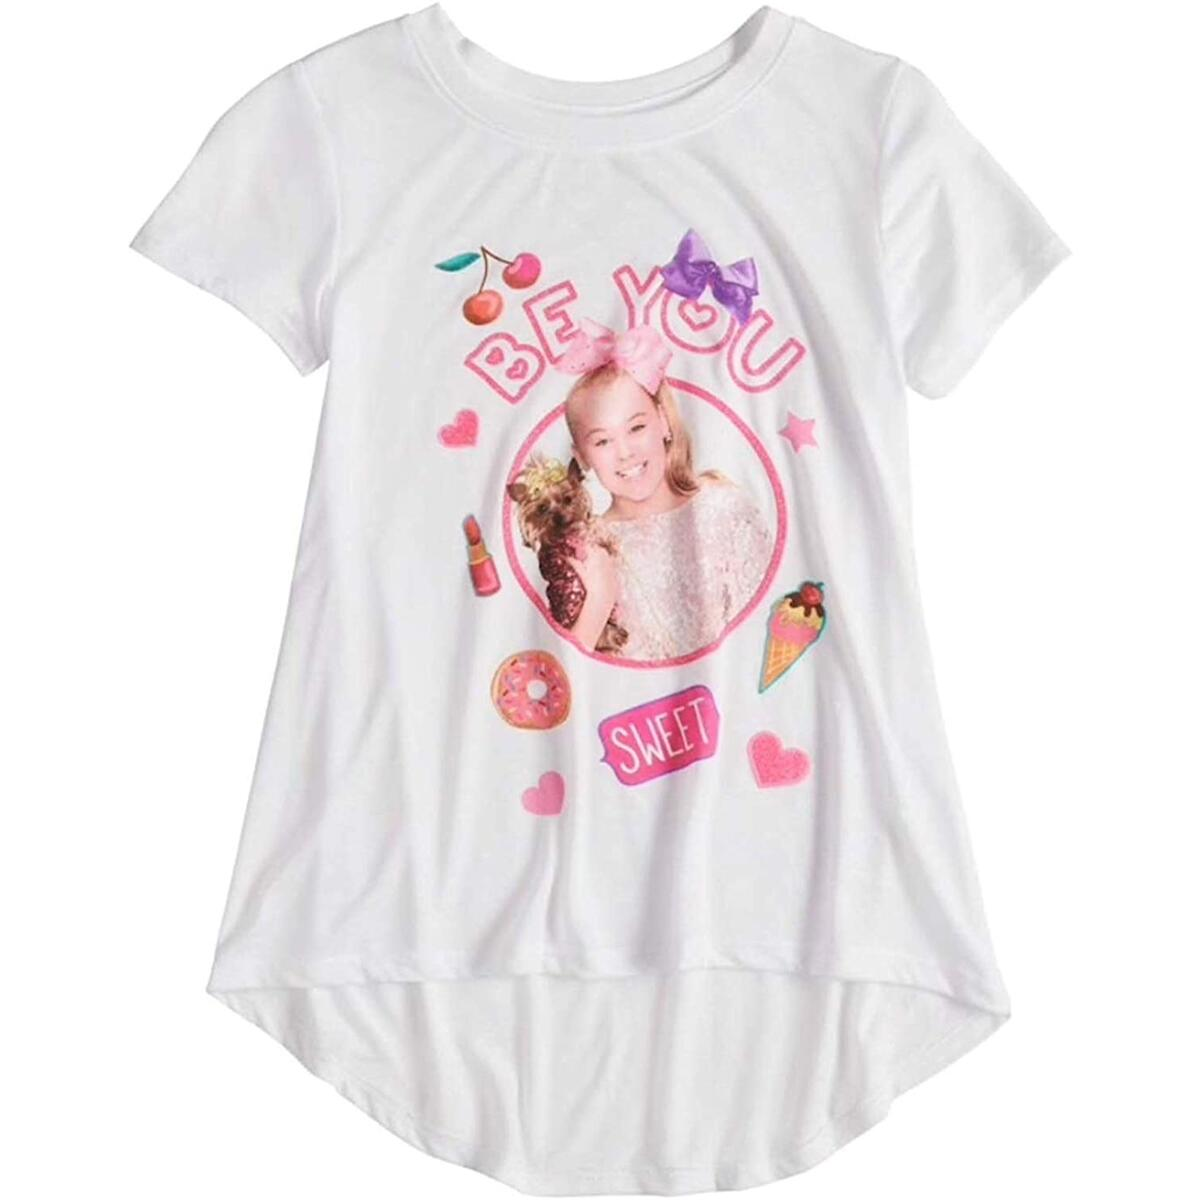 Nickelodeon Girls' JoJo Siwa Short Sleeve T-Shirt